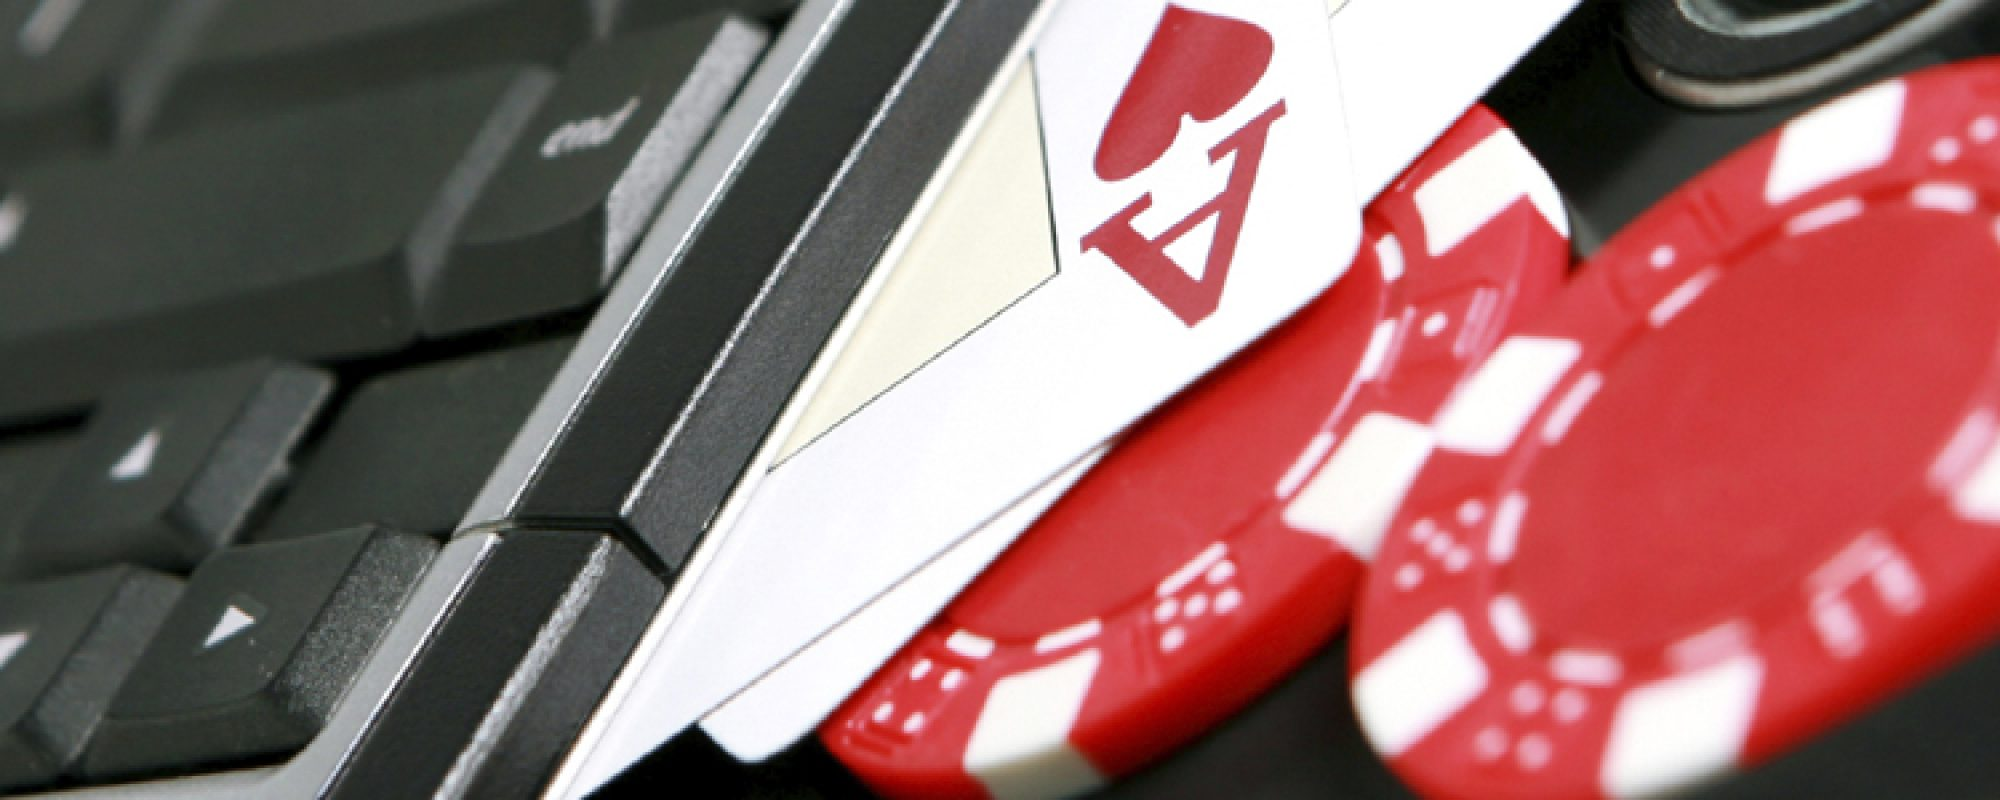 Betting Online Site Online Game